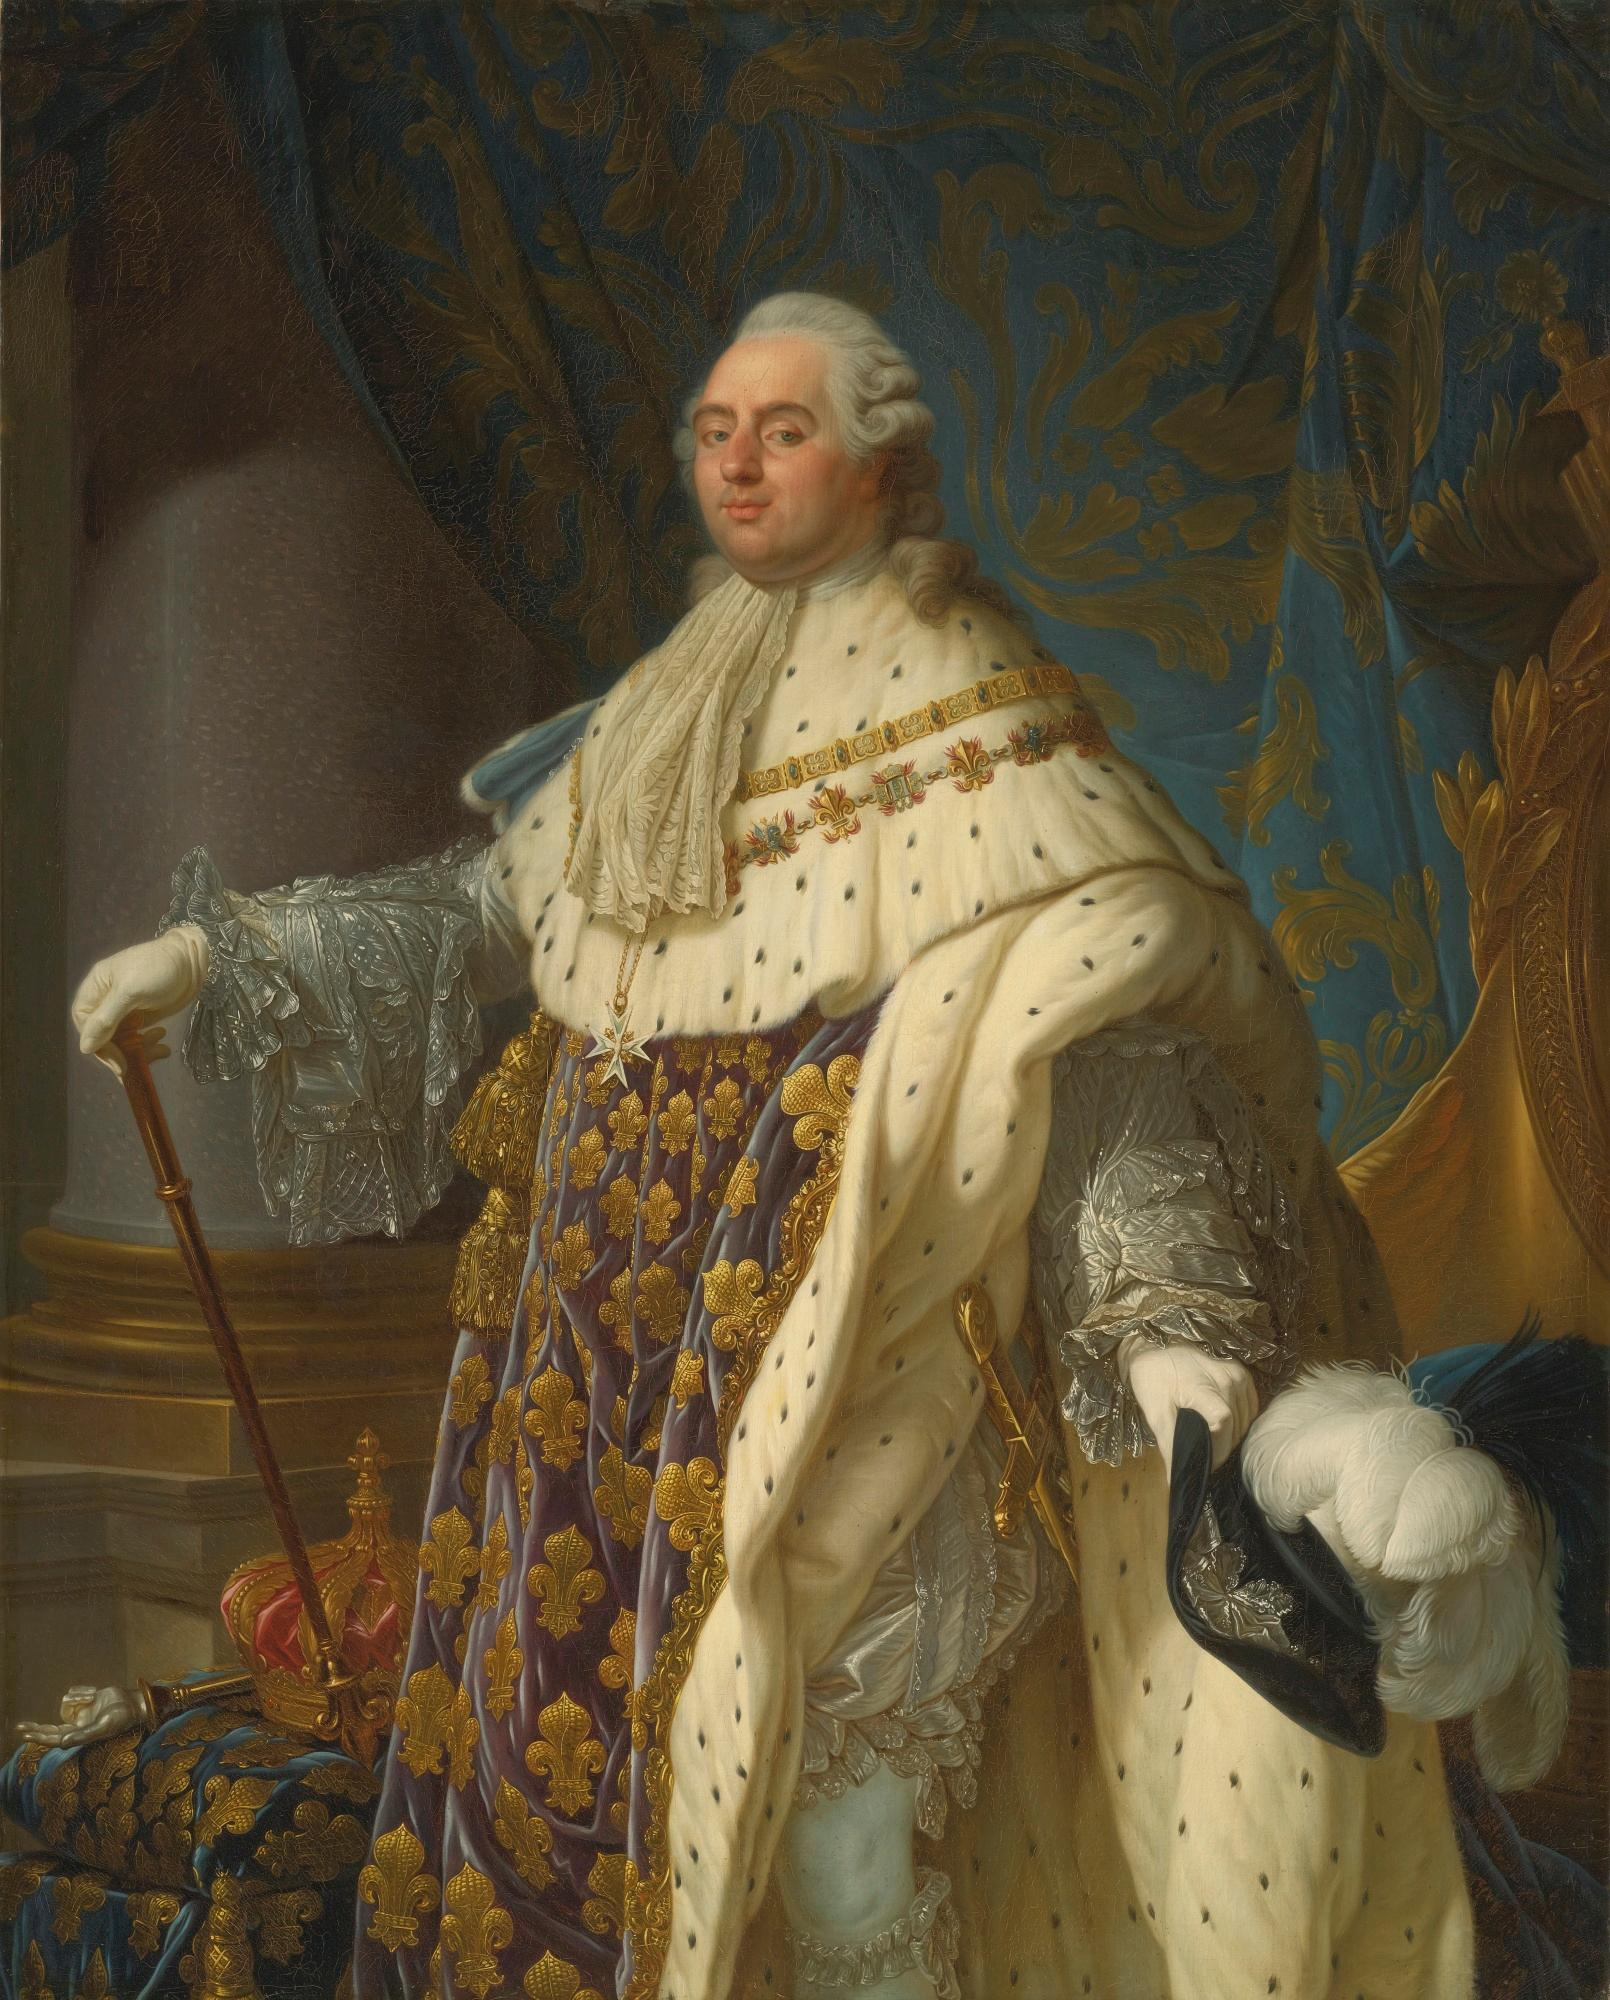 Portrait of Louis XVI of France in Coronation Robes (Wikimedia)